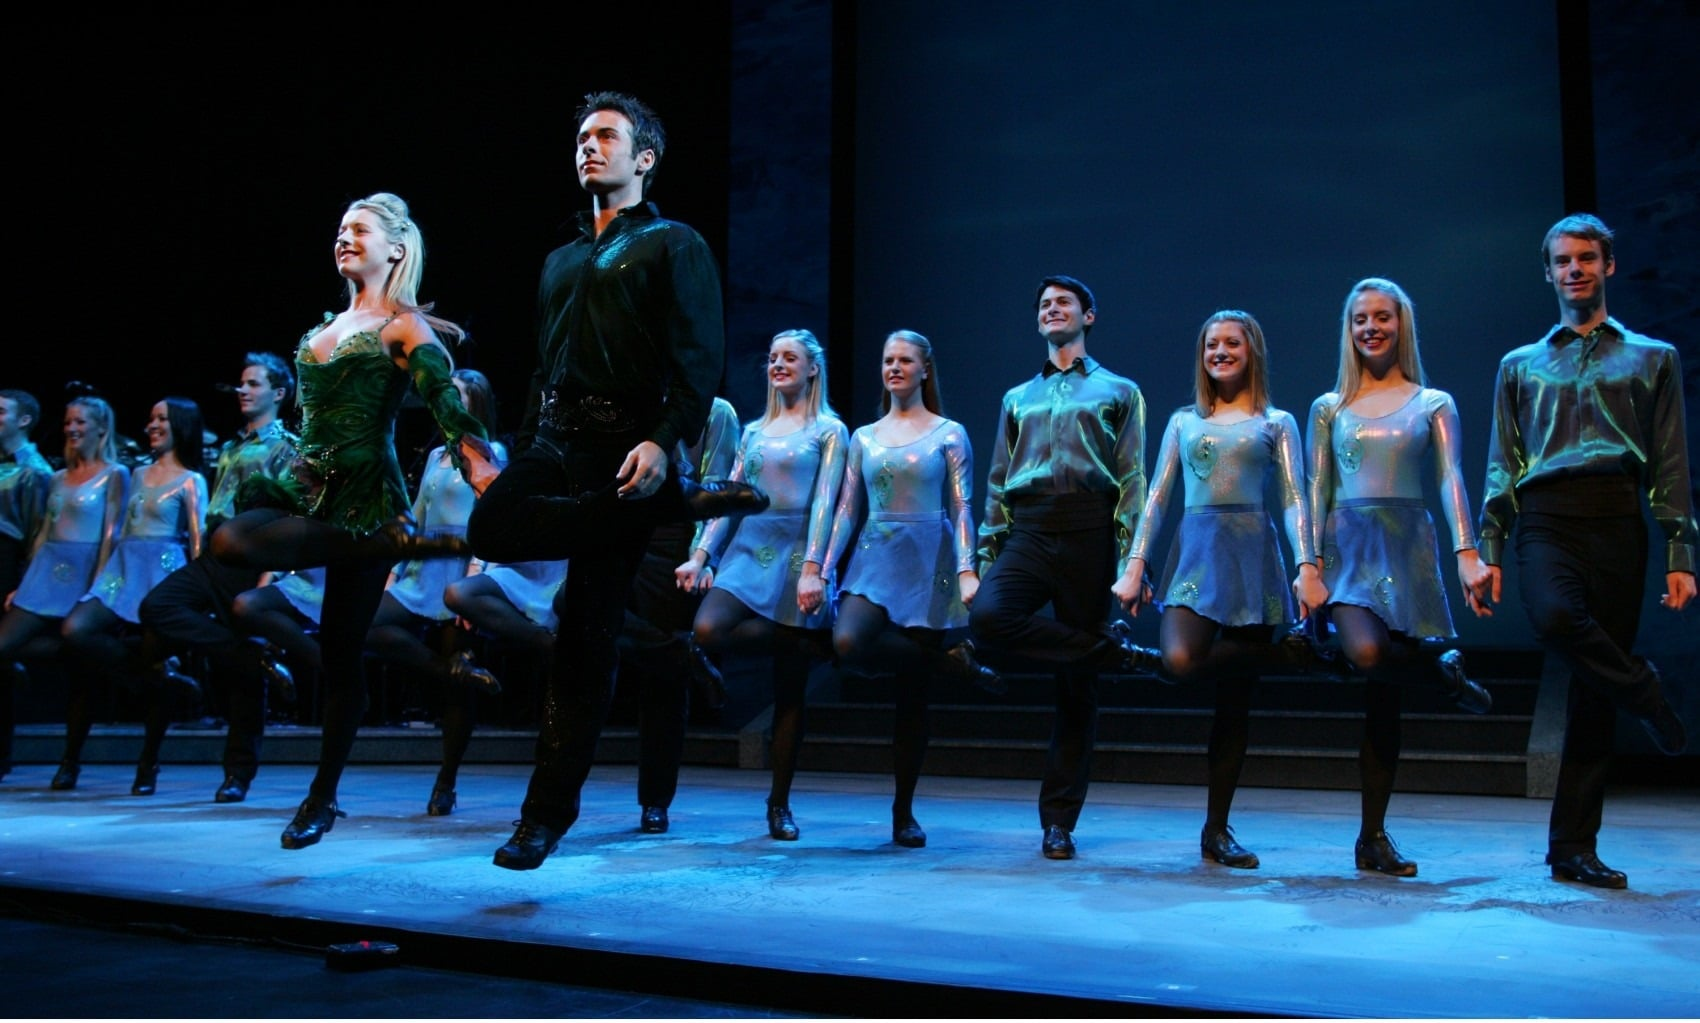 1a562e86ec3c Irish dancing became internationally popular in the 1990s after the success  of Riverdance but Irish dance takes many forms including jigs, reels, ...